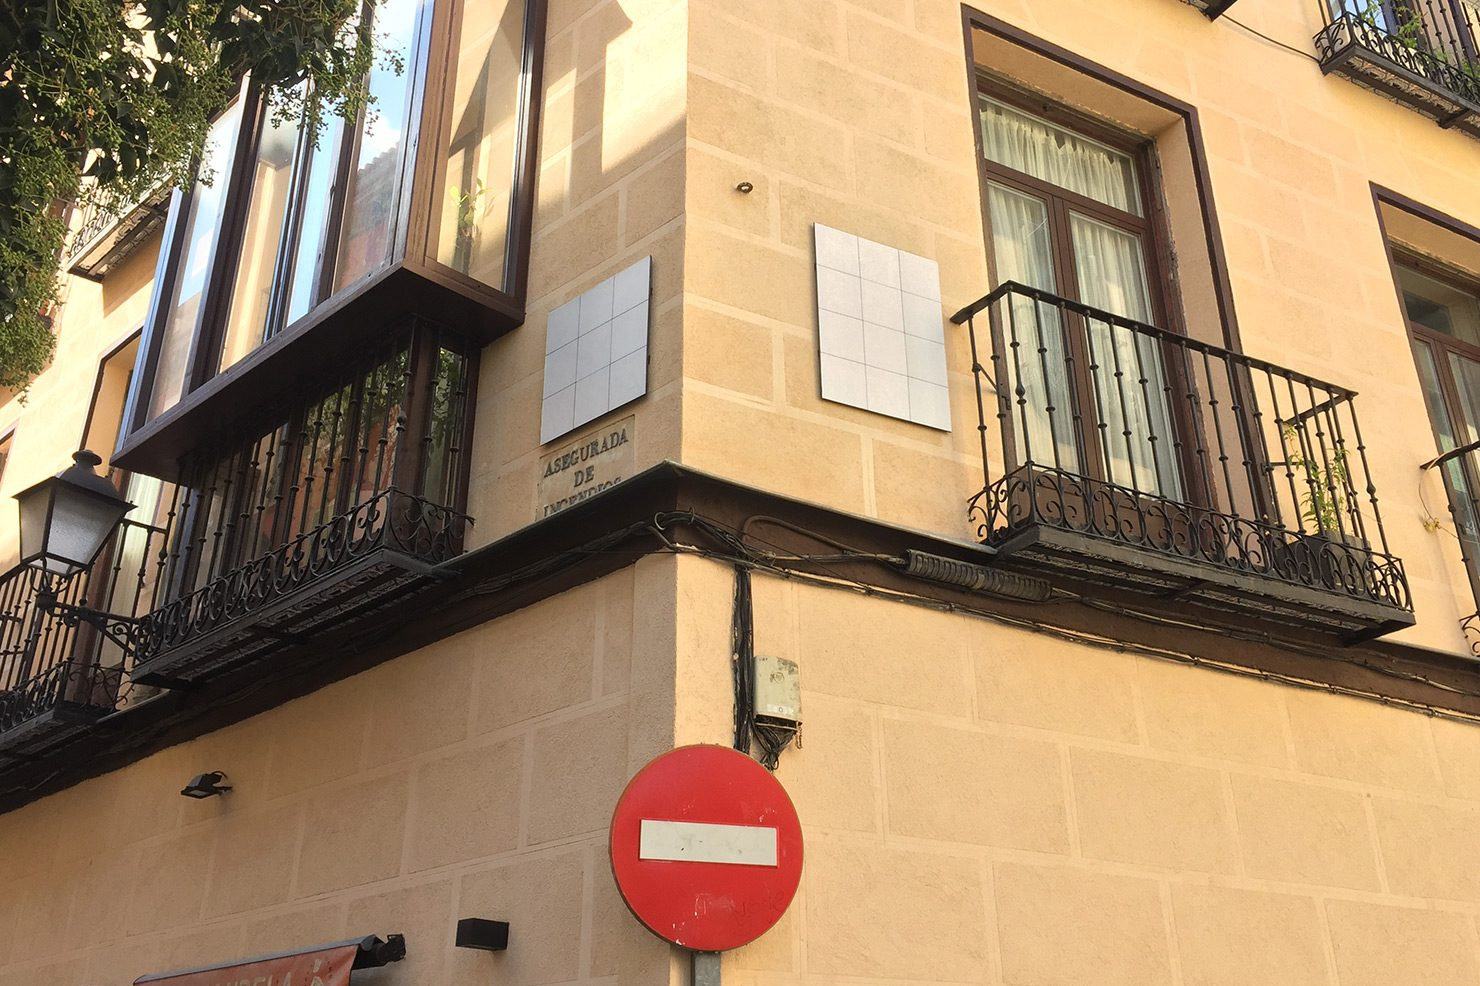 Blanked out street signs in central Madrid. Part of the #CallesEnBlanco initiative.